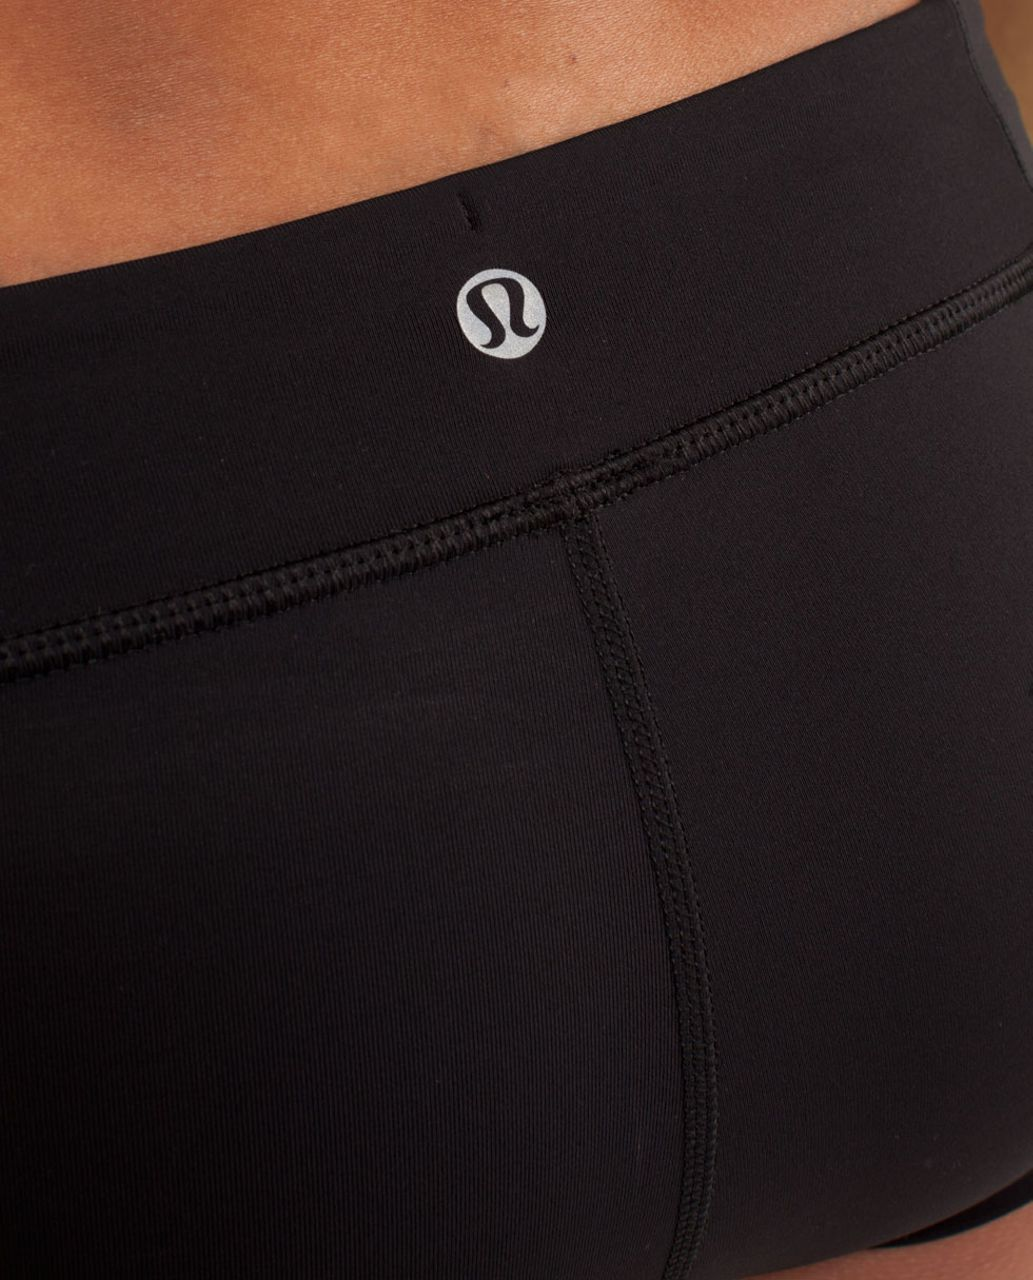 Lululemon Heat It Up Short - Black / Faded Zap / Frond